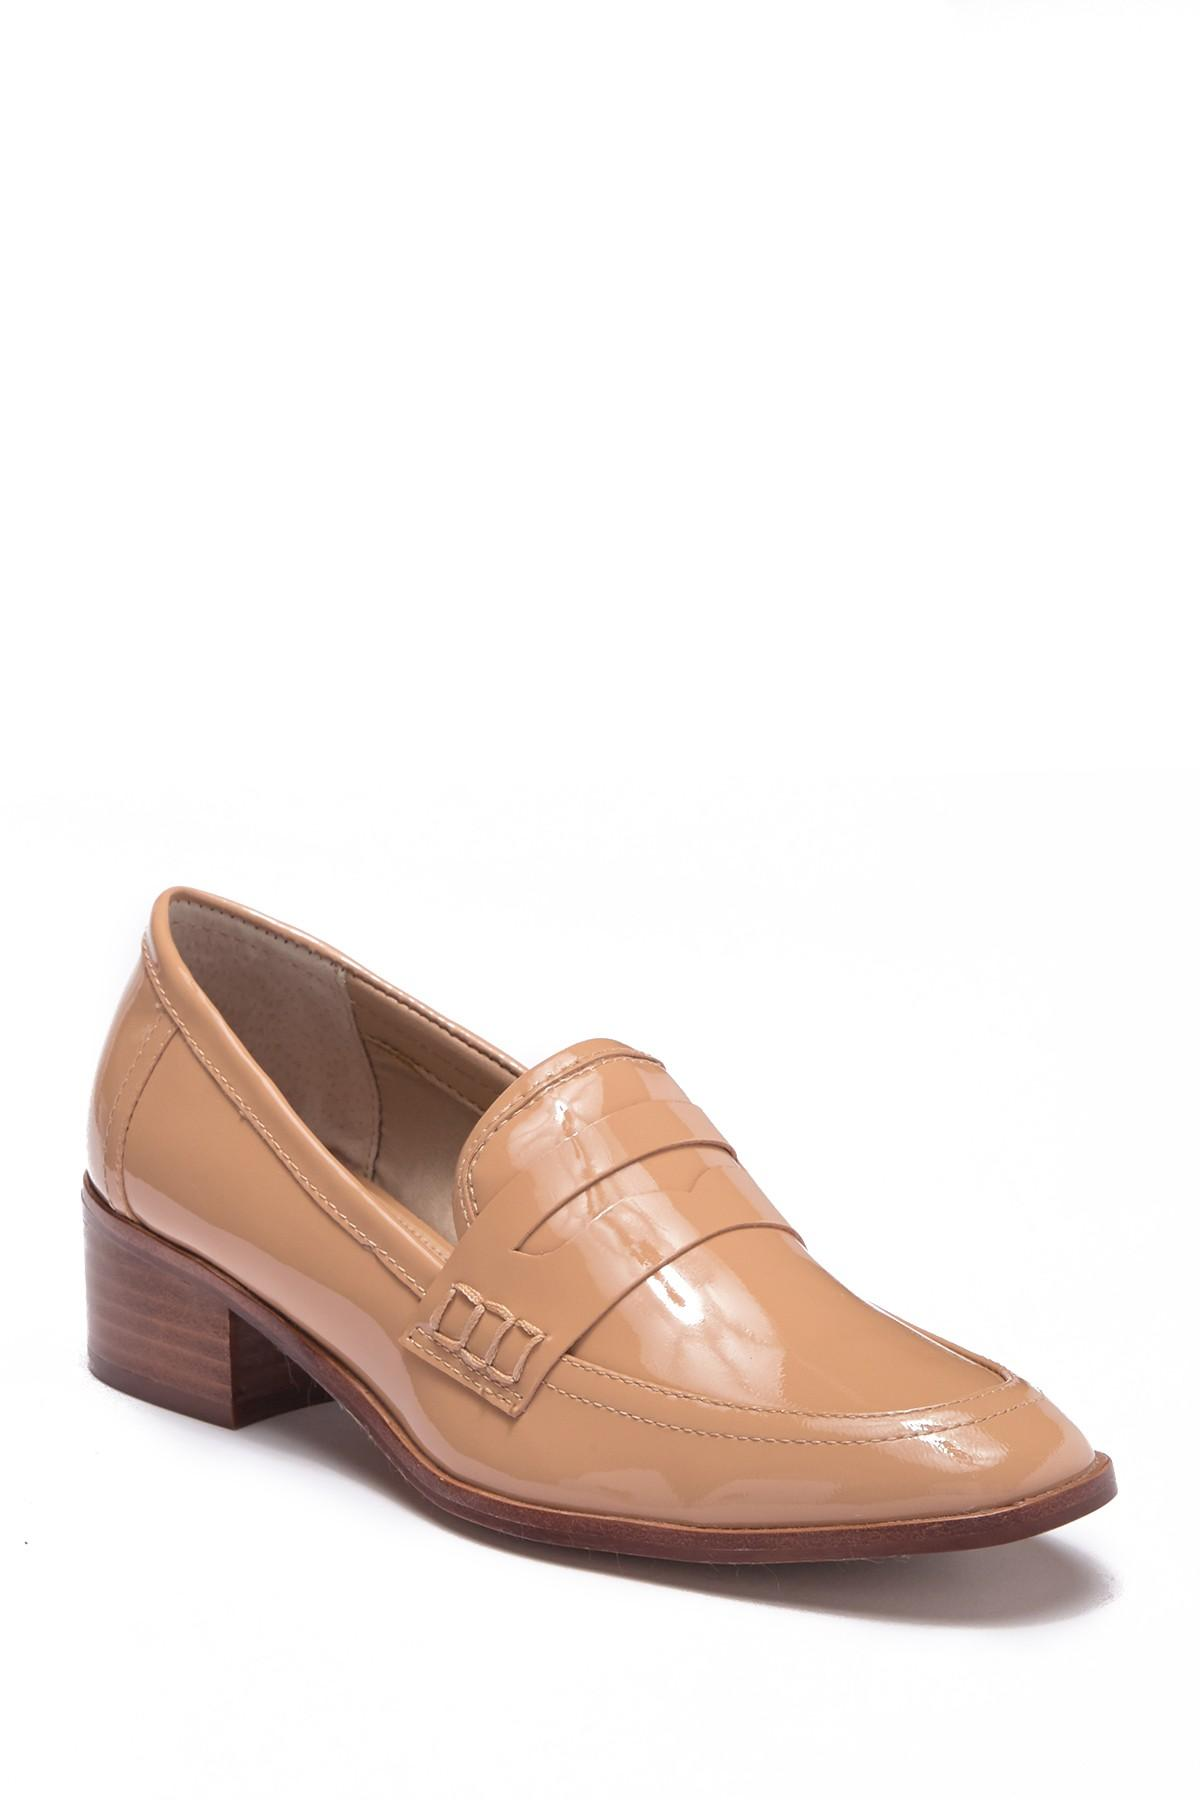 55dff85ea93 Lyst - Steven by Steve Madden Iona Leather Penny Loafer - Save 63%